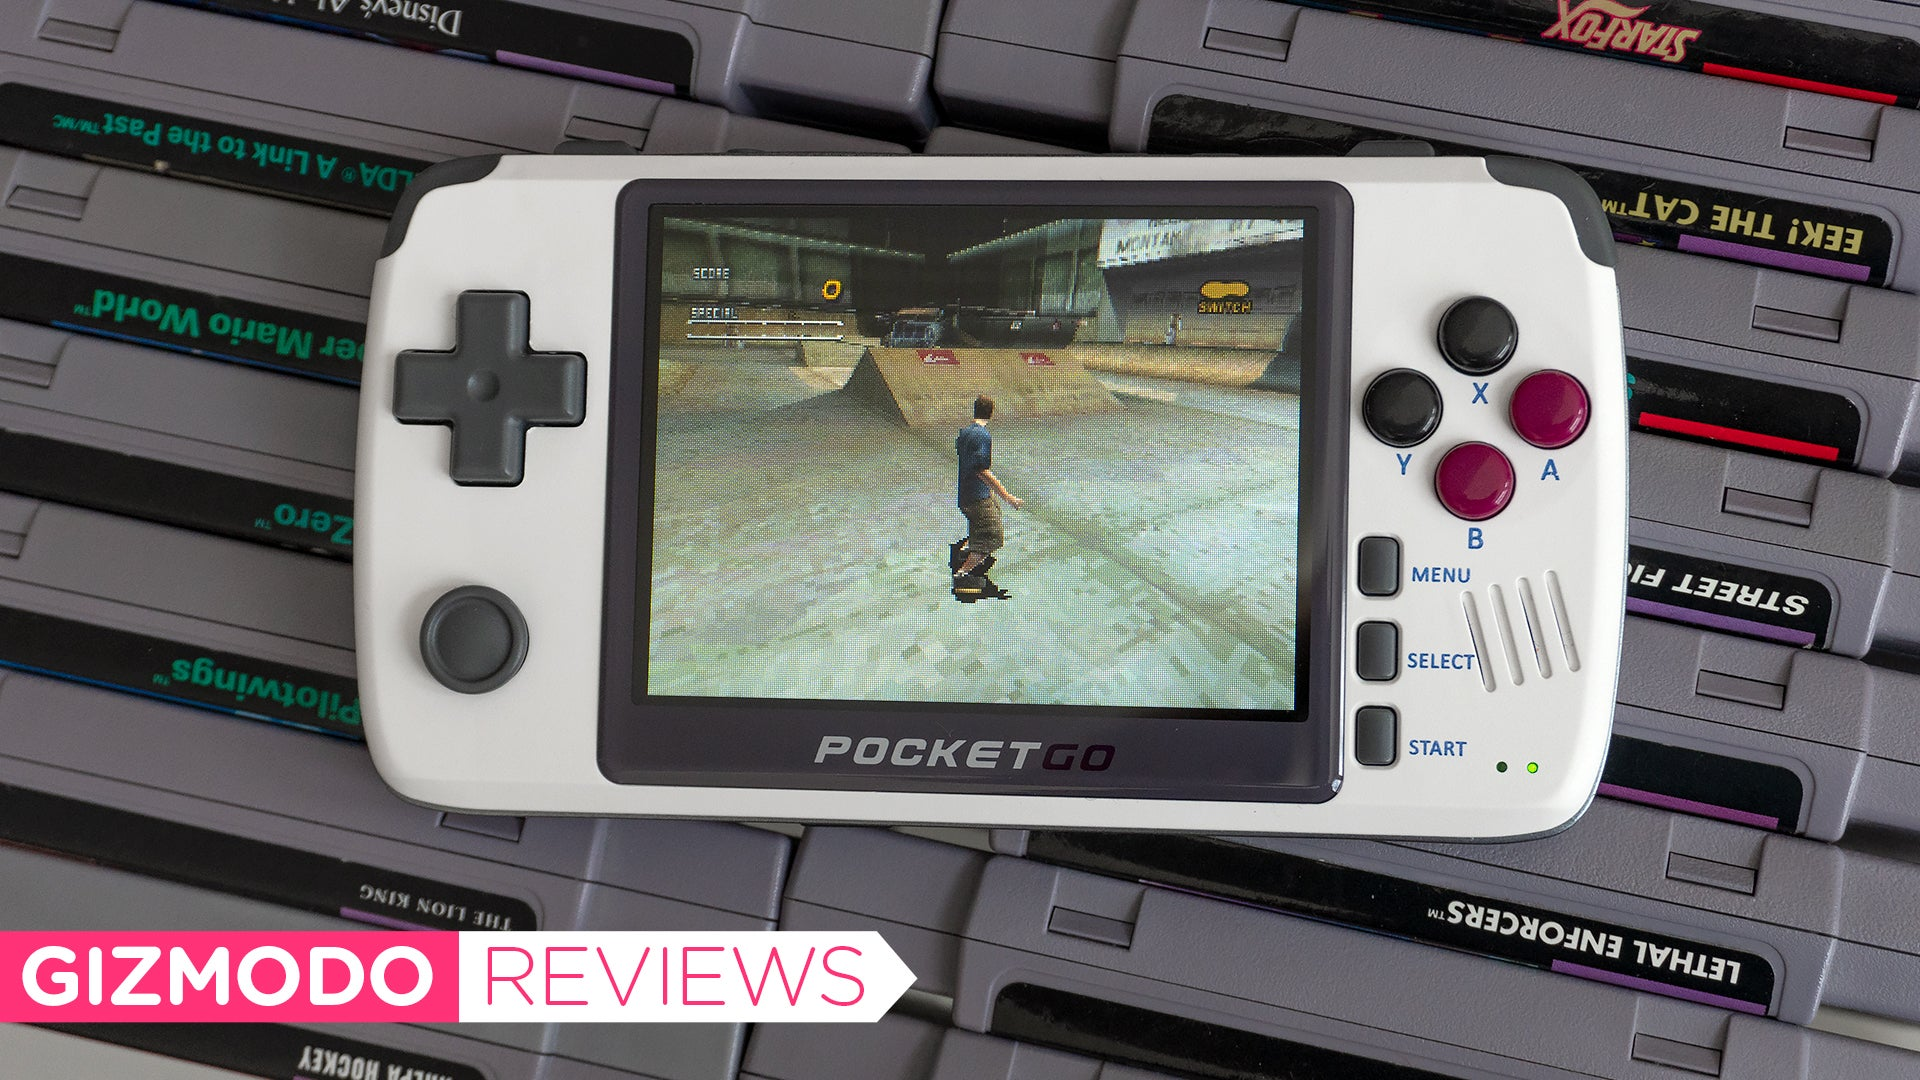 For $120 This Handheld Console Isn't Perfect But It Gets The Important Things Right